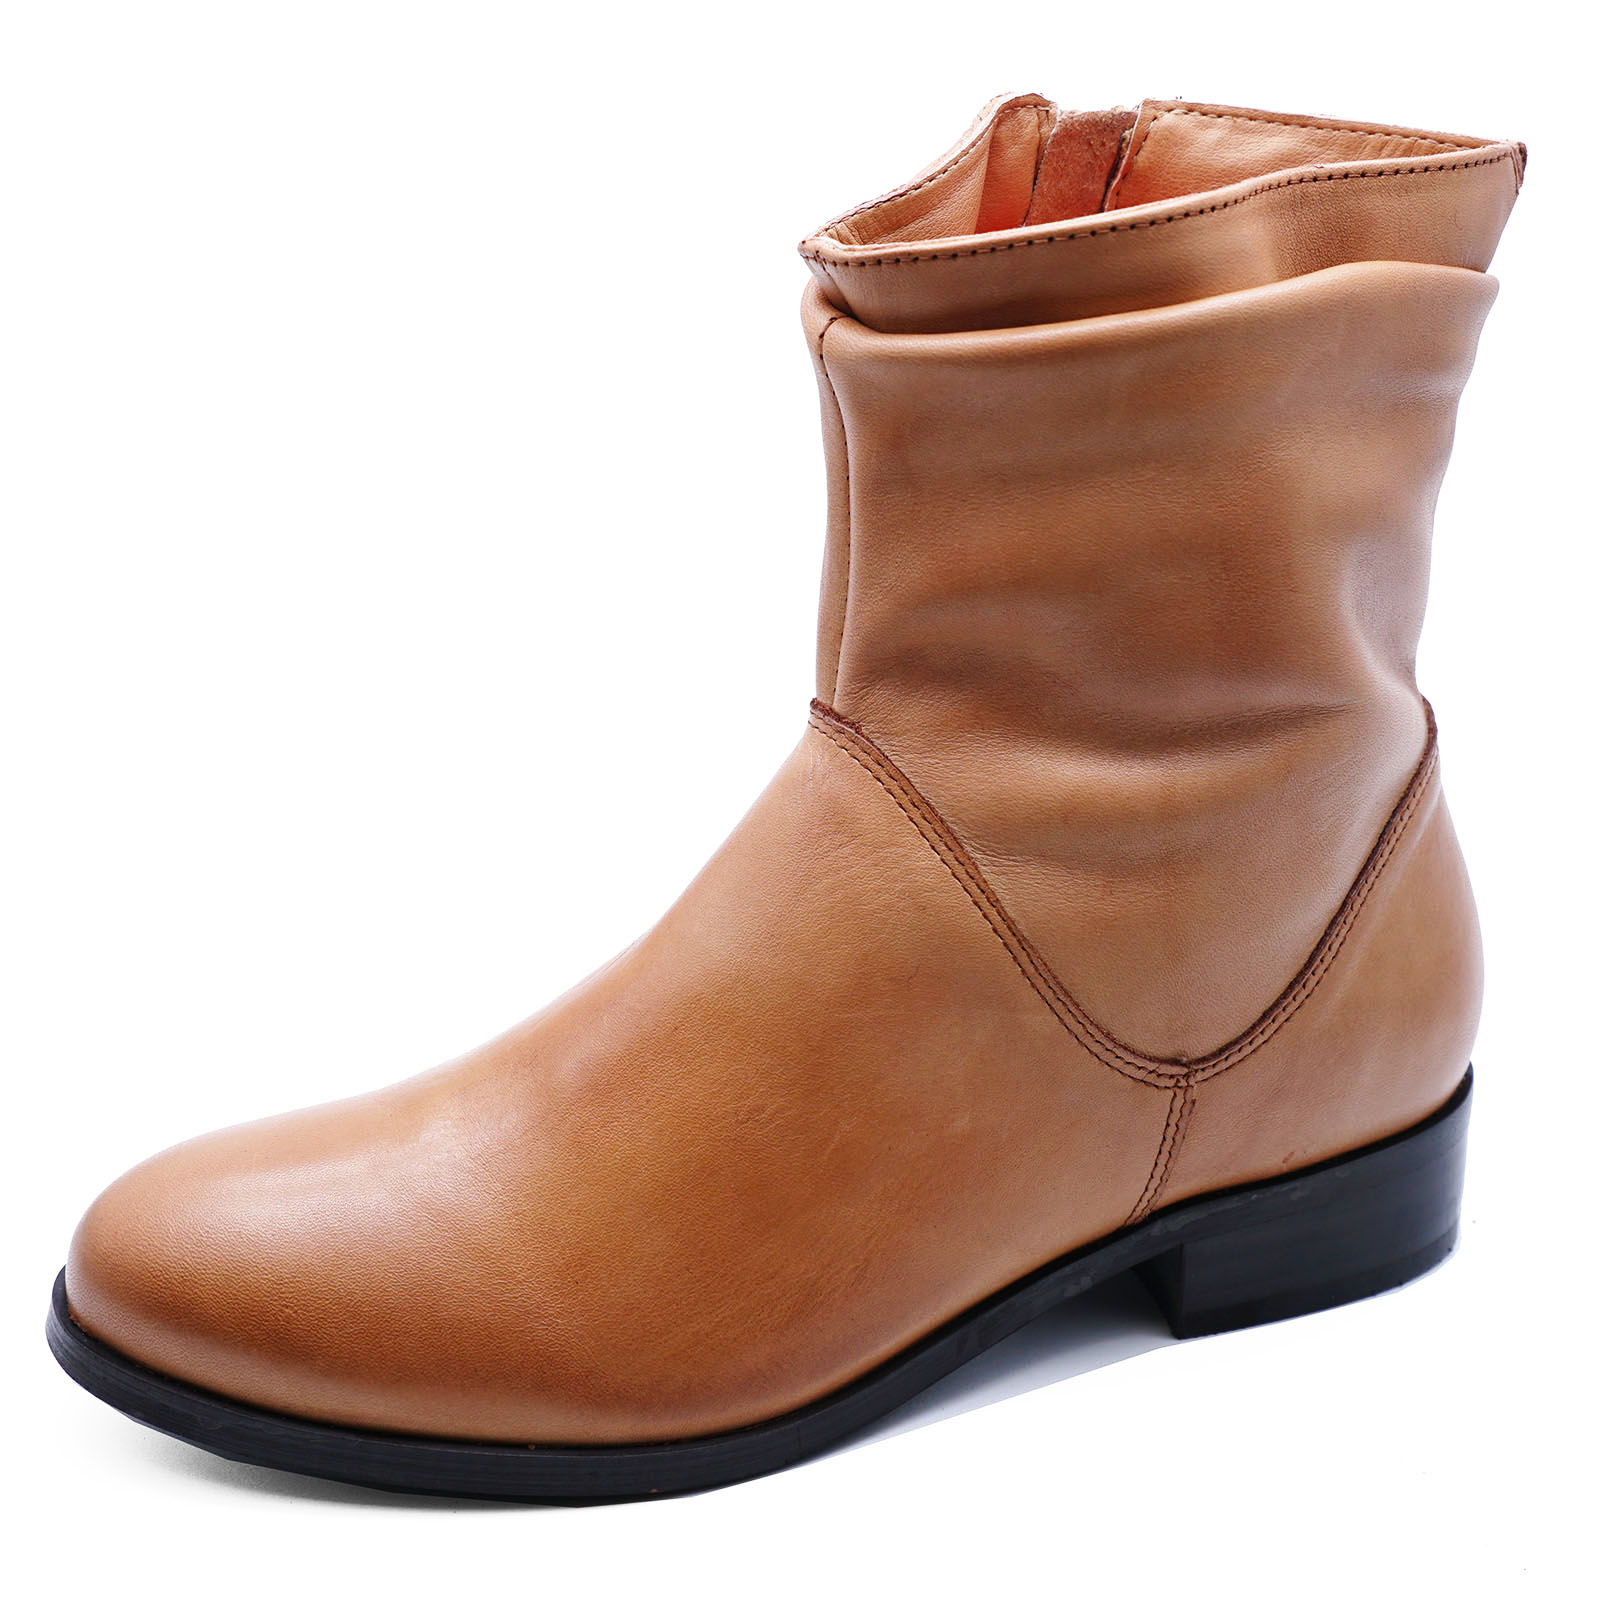 LADIES-FLAT-GENUINE-LEATHER-TAN-ZIP-UP-ANKLE-CALF-BOOTS-COMFY-SHOES-SIZES-2-9 thumbnail 11